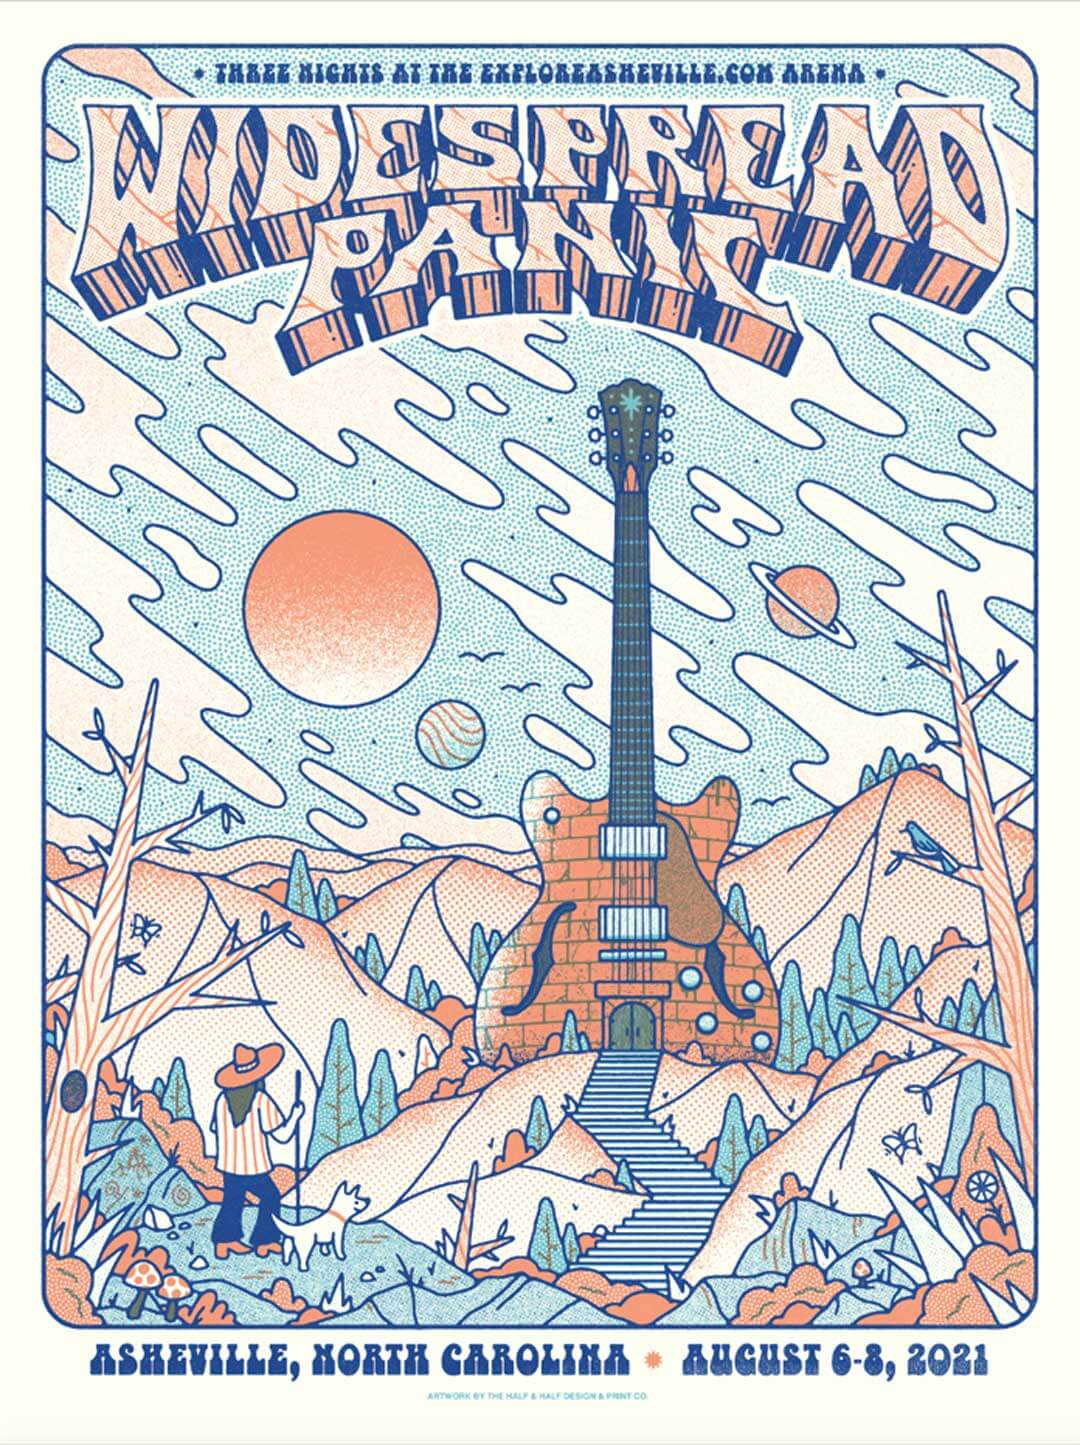 Widespread Panic Poster Asheville 2021 by The Half and Half